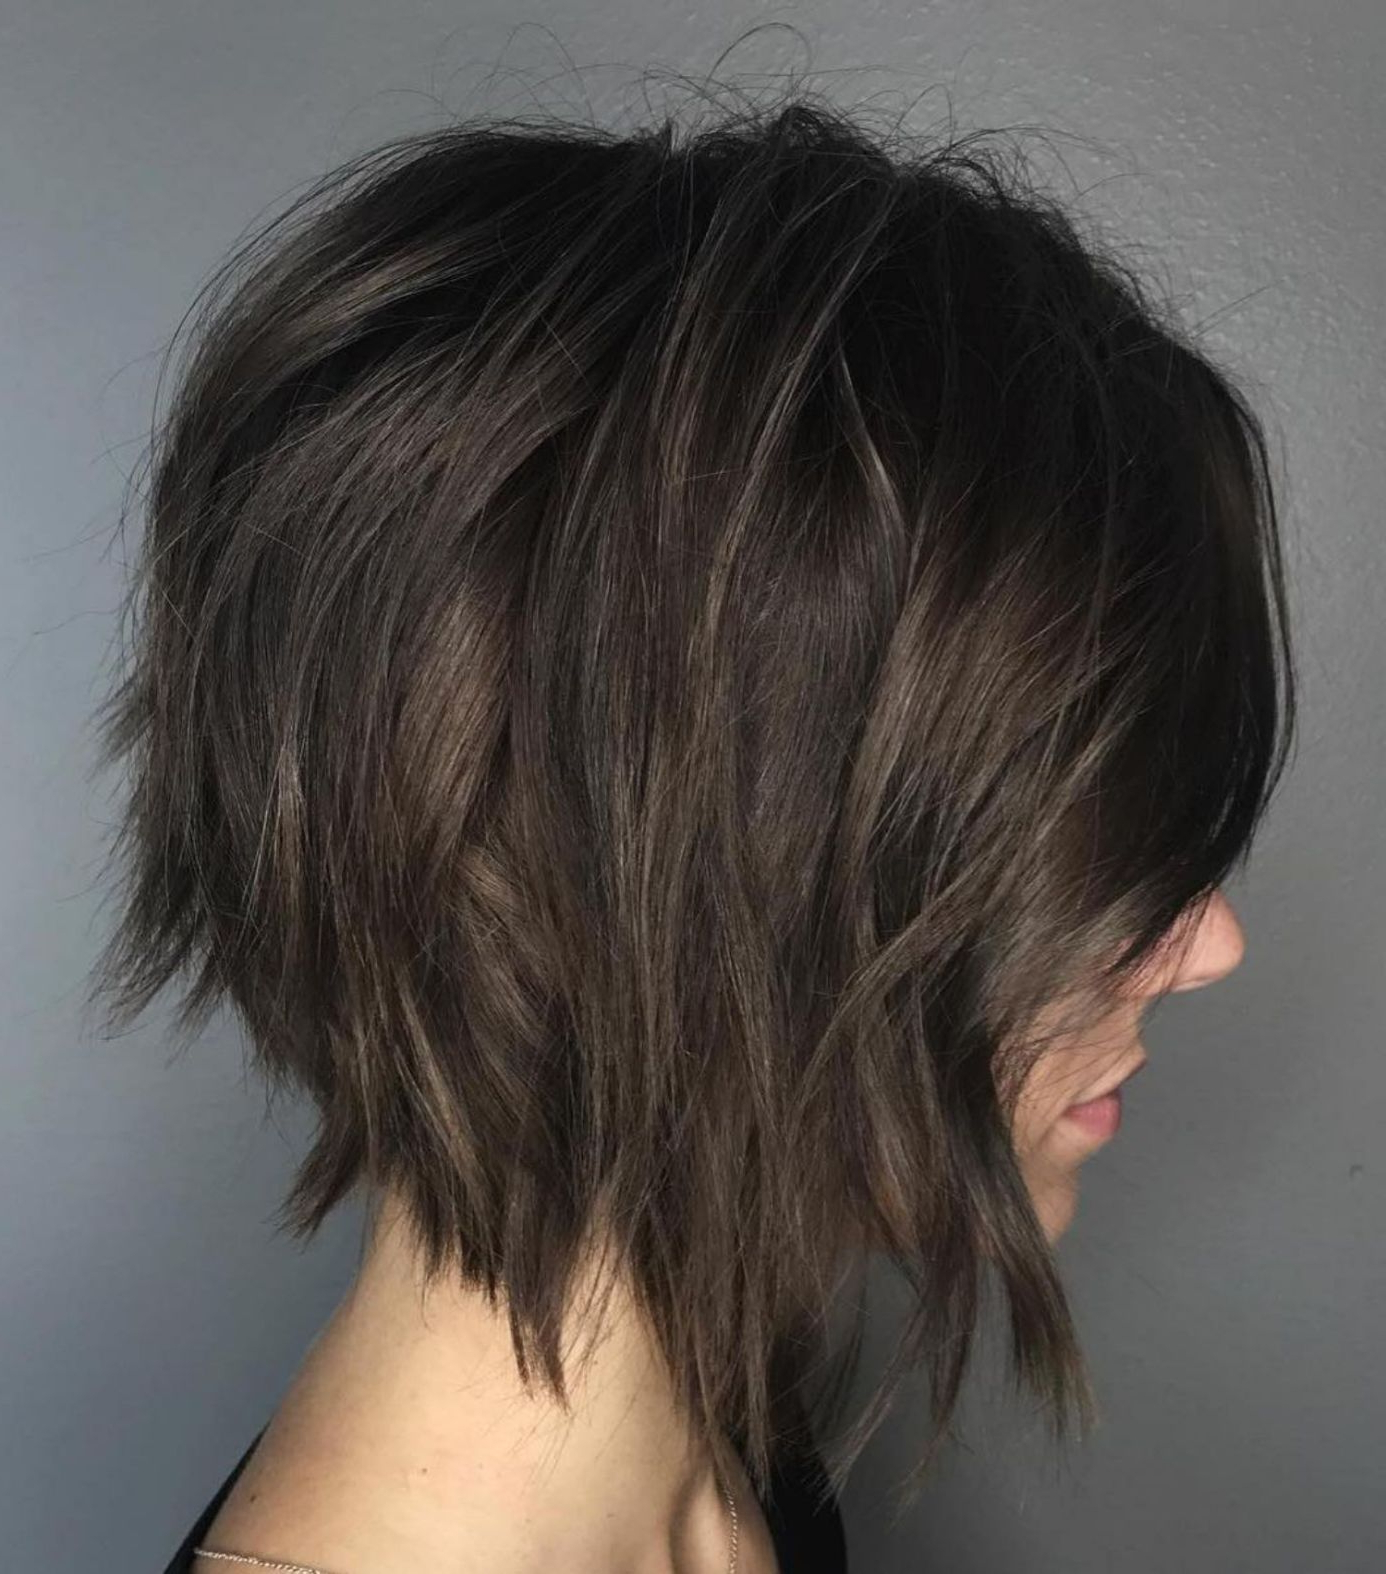 60 Messy Bob Hairstyles For Your Trendy Casual Looks | Me Pertaining To Inverted Brunette Bob Hairstyles With Messy Curls (Gallery 5 of 25)